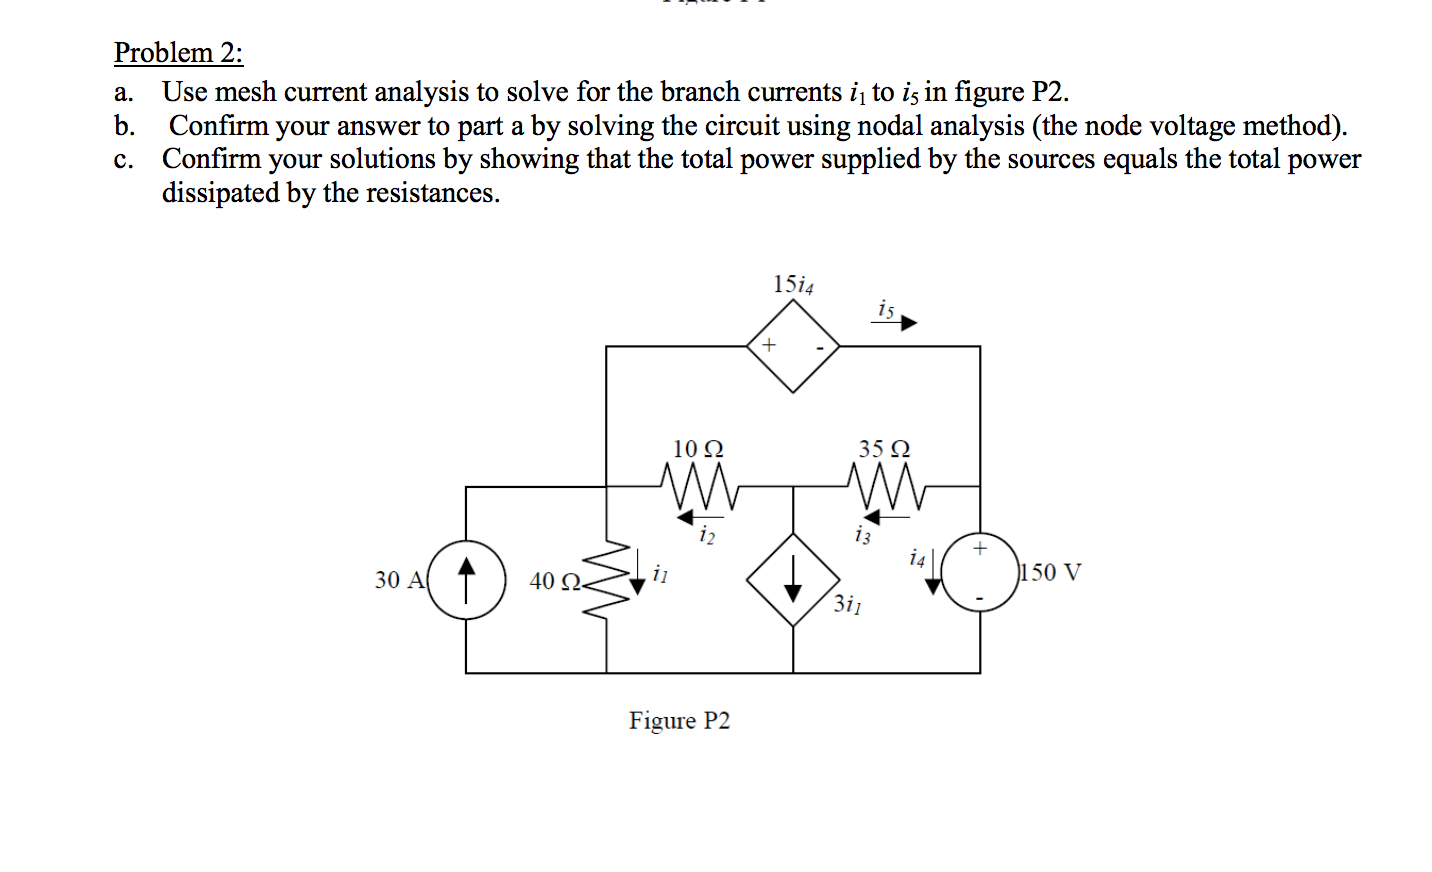 Use mesh current analysis to solve for the branch